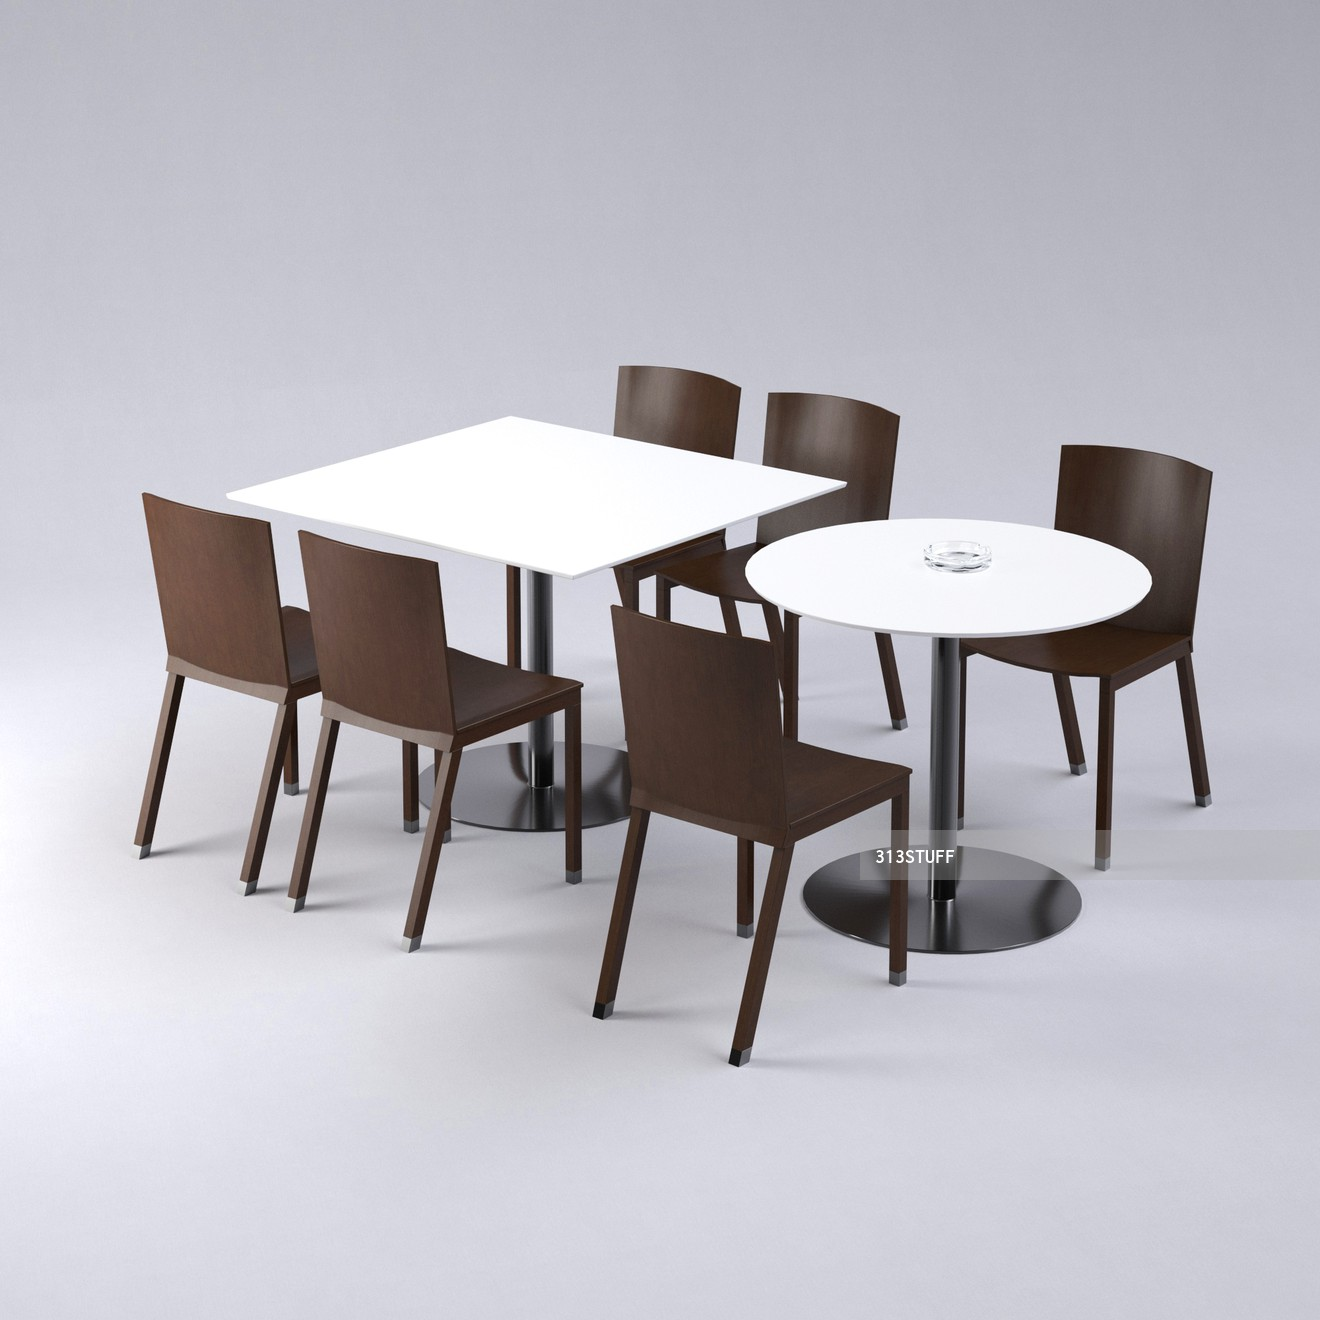 313 Standard cafe urniture set